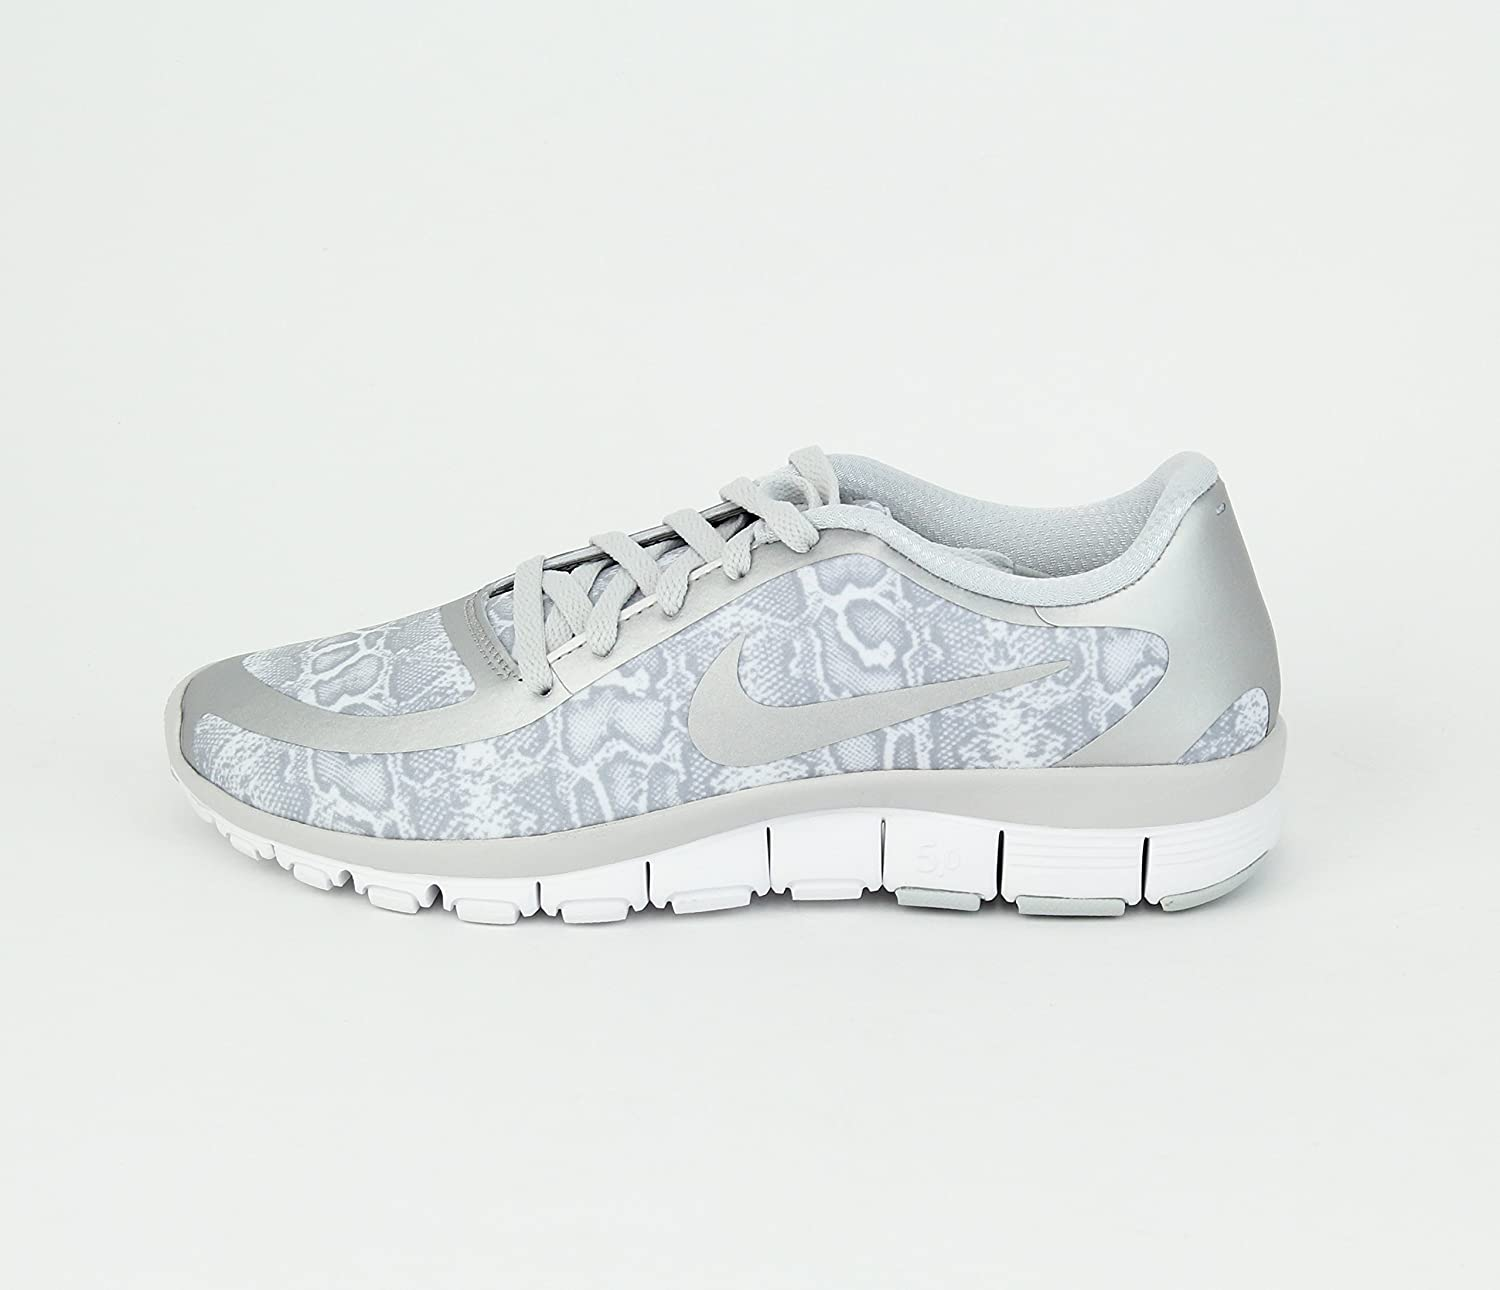 Nike Zapatillas air mogan 2 5.5 B(M) US|Blanco/Plateado